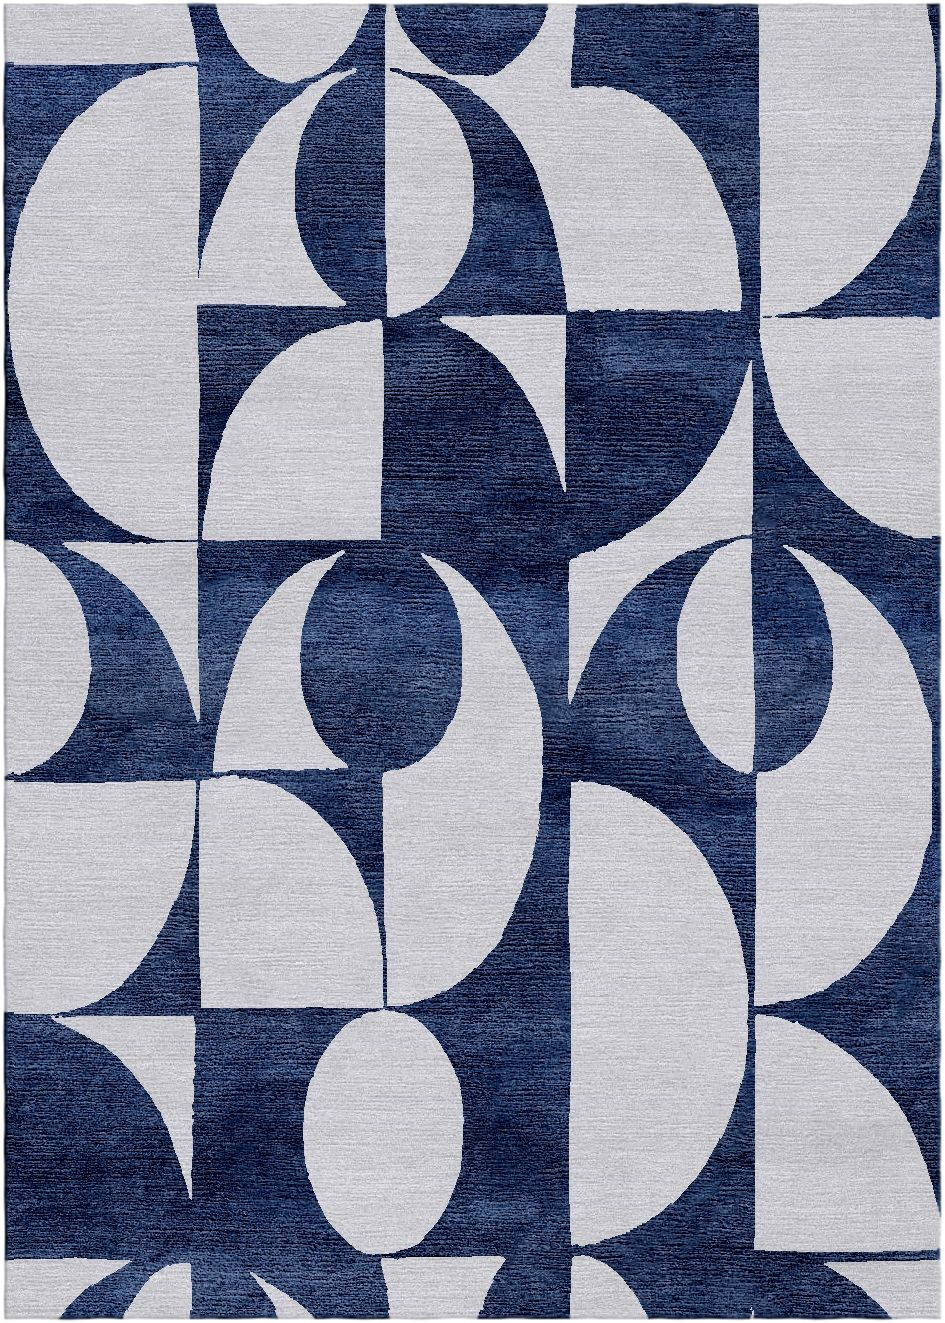 Next stop Pinterest Contemporary rug, Tufted, Kids rugs